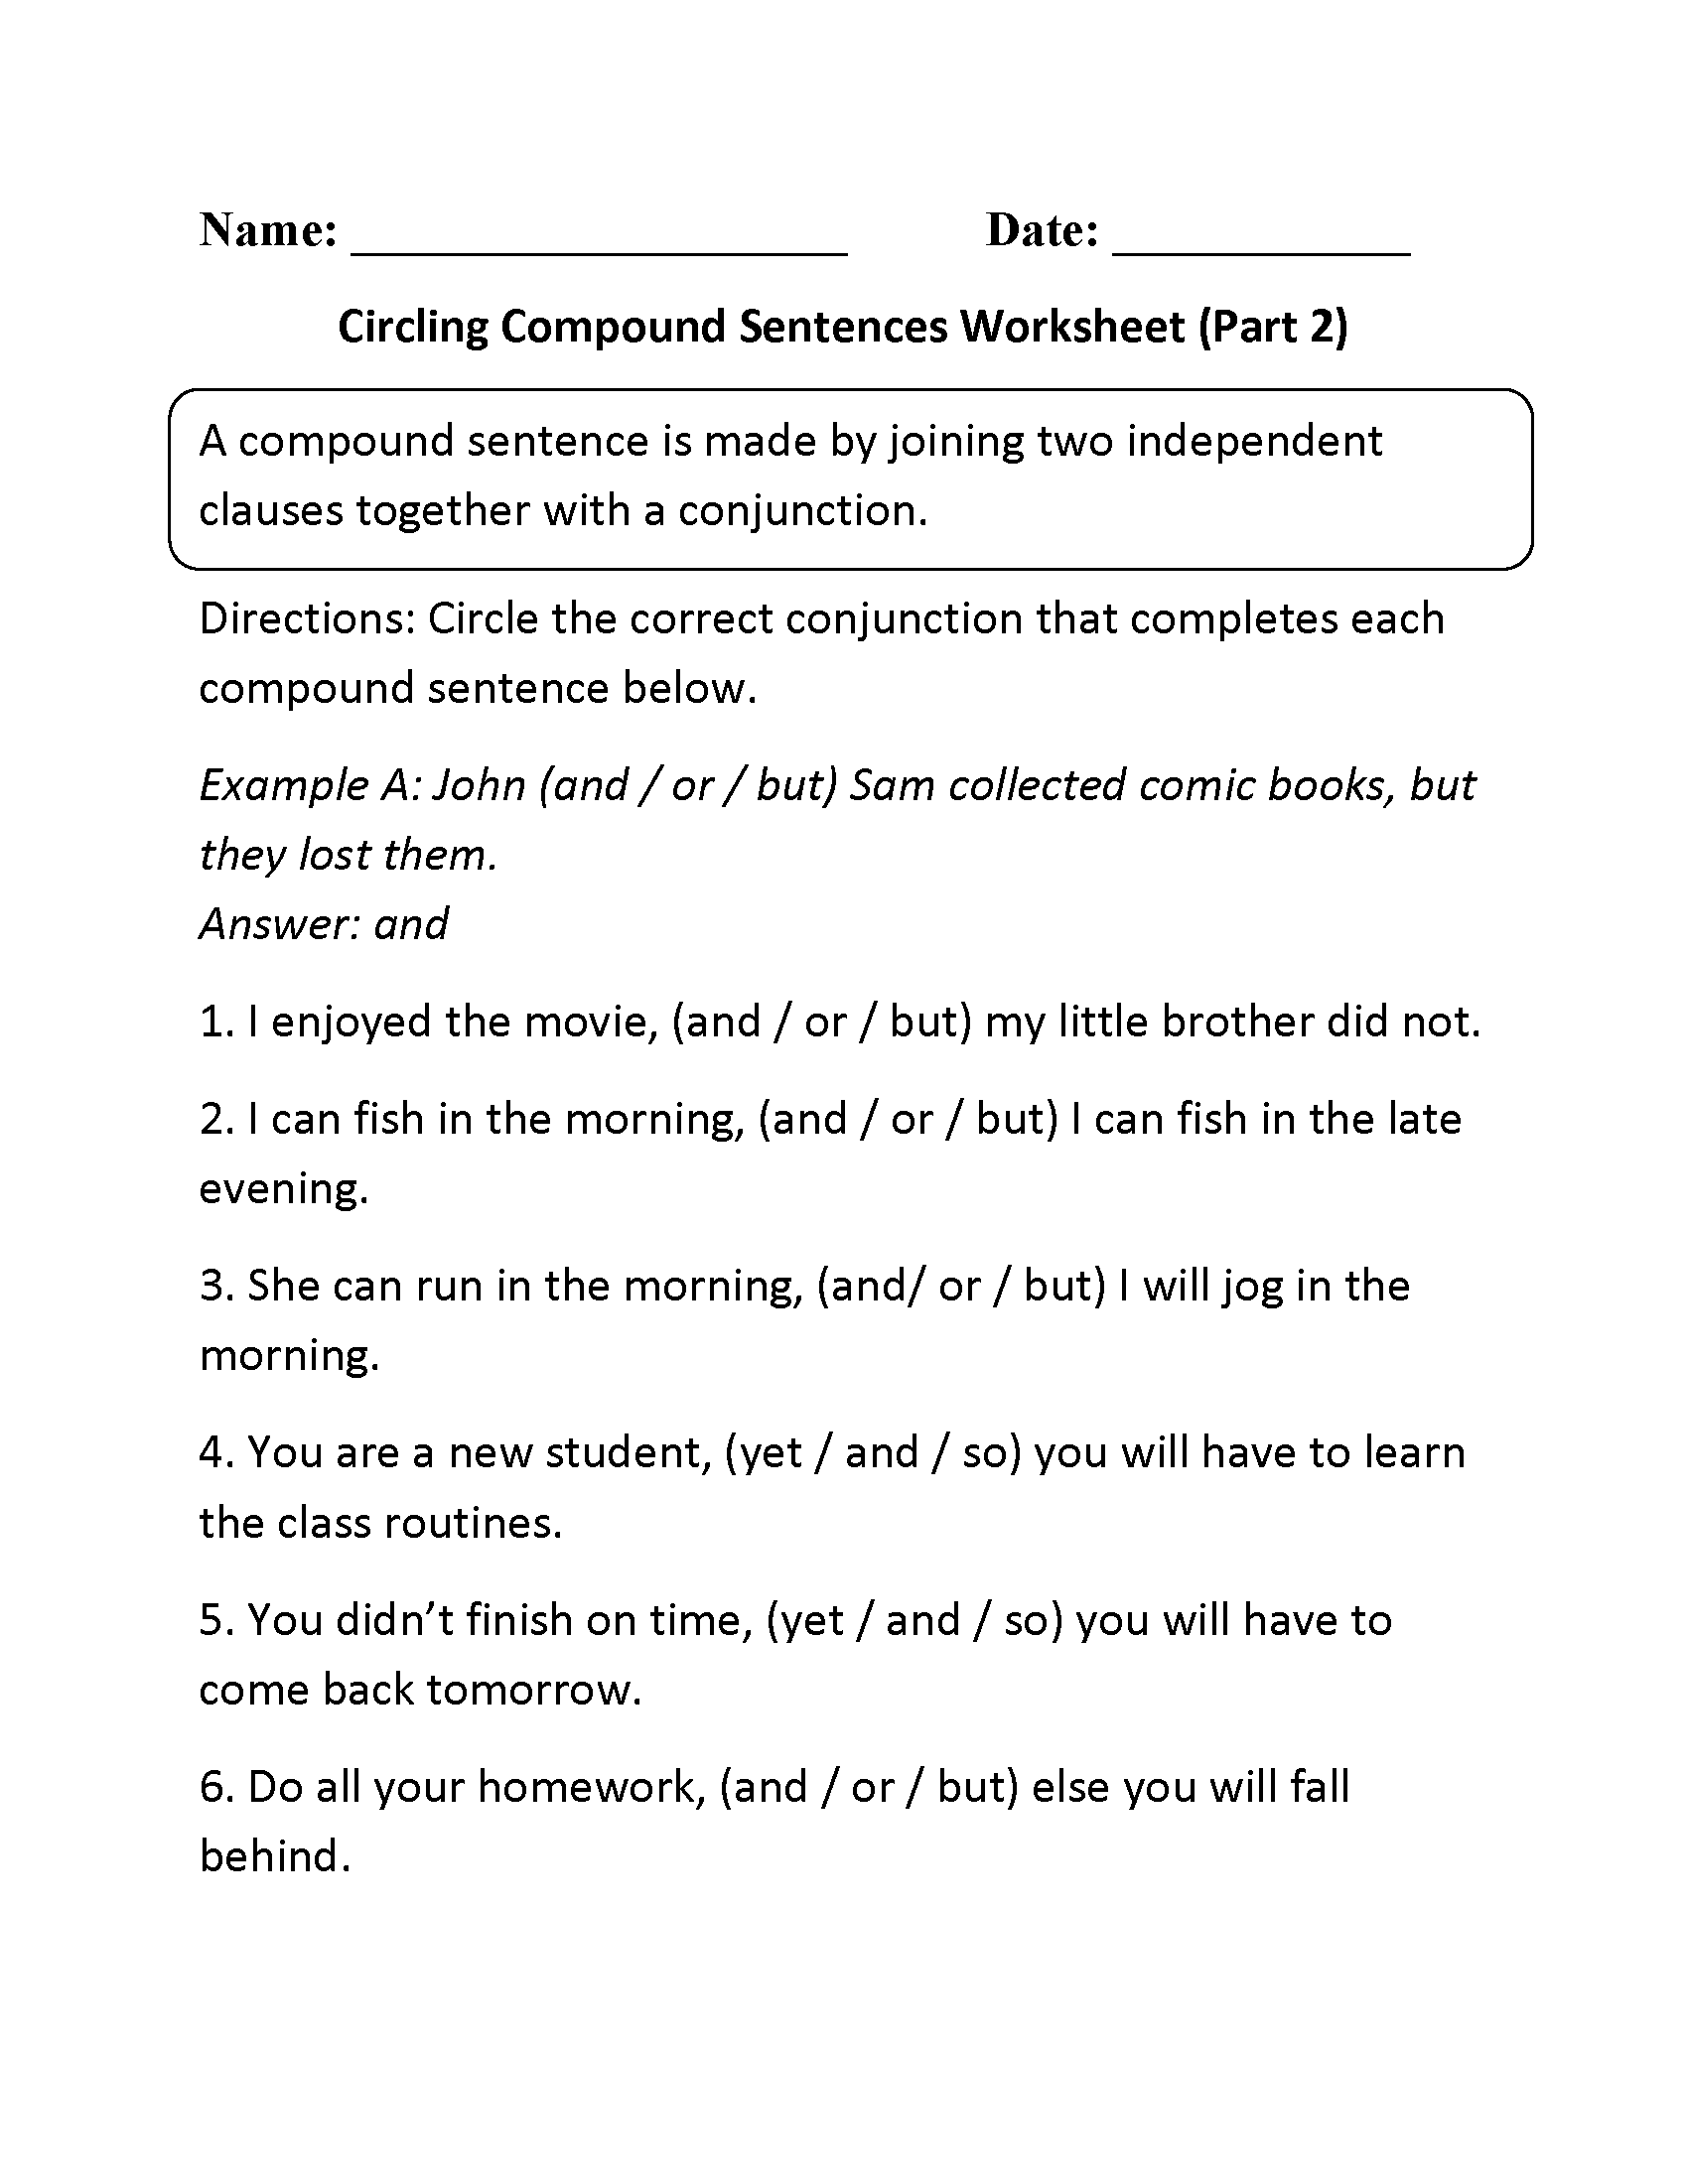 Sentences Worksheets – Correcting Sentences Worksheets